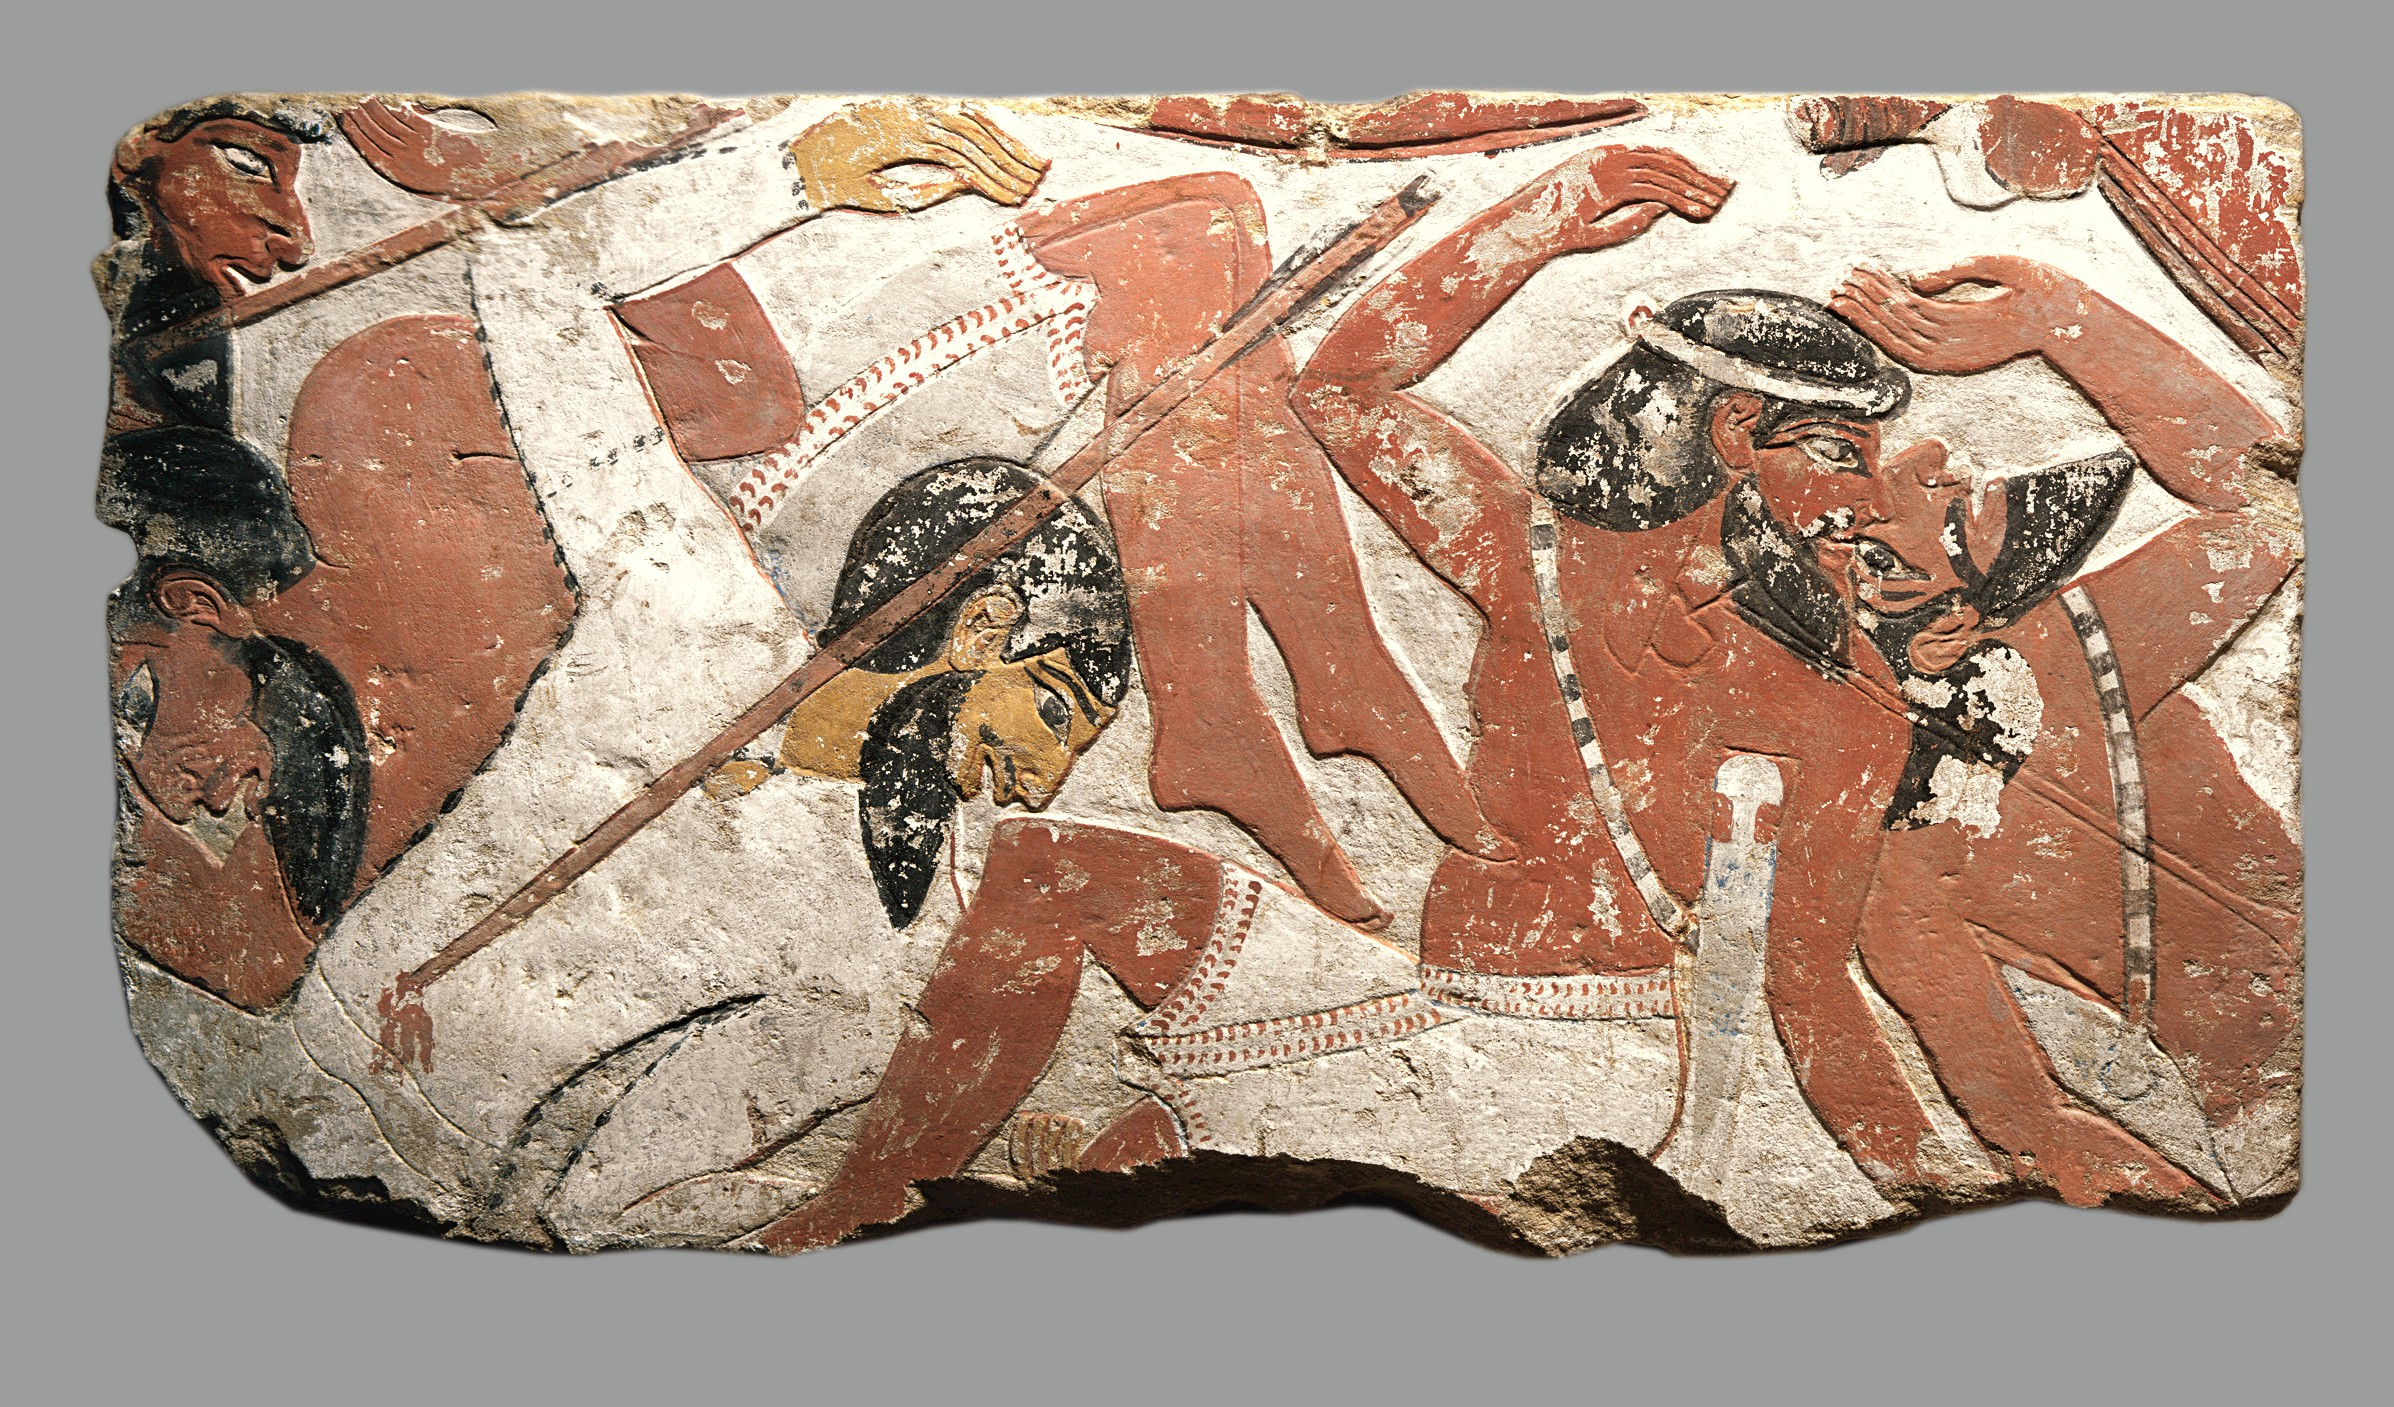 Egyptian relief from the MET collection